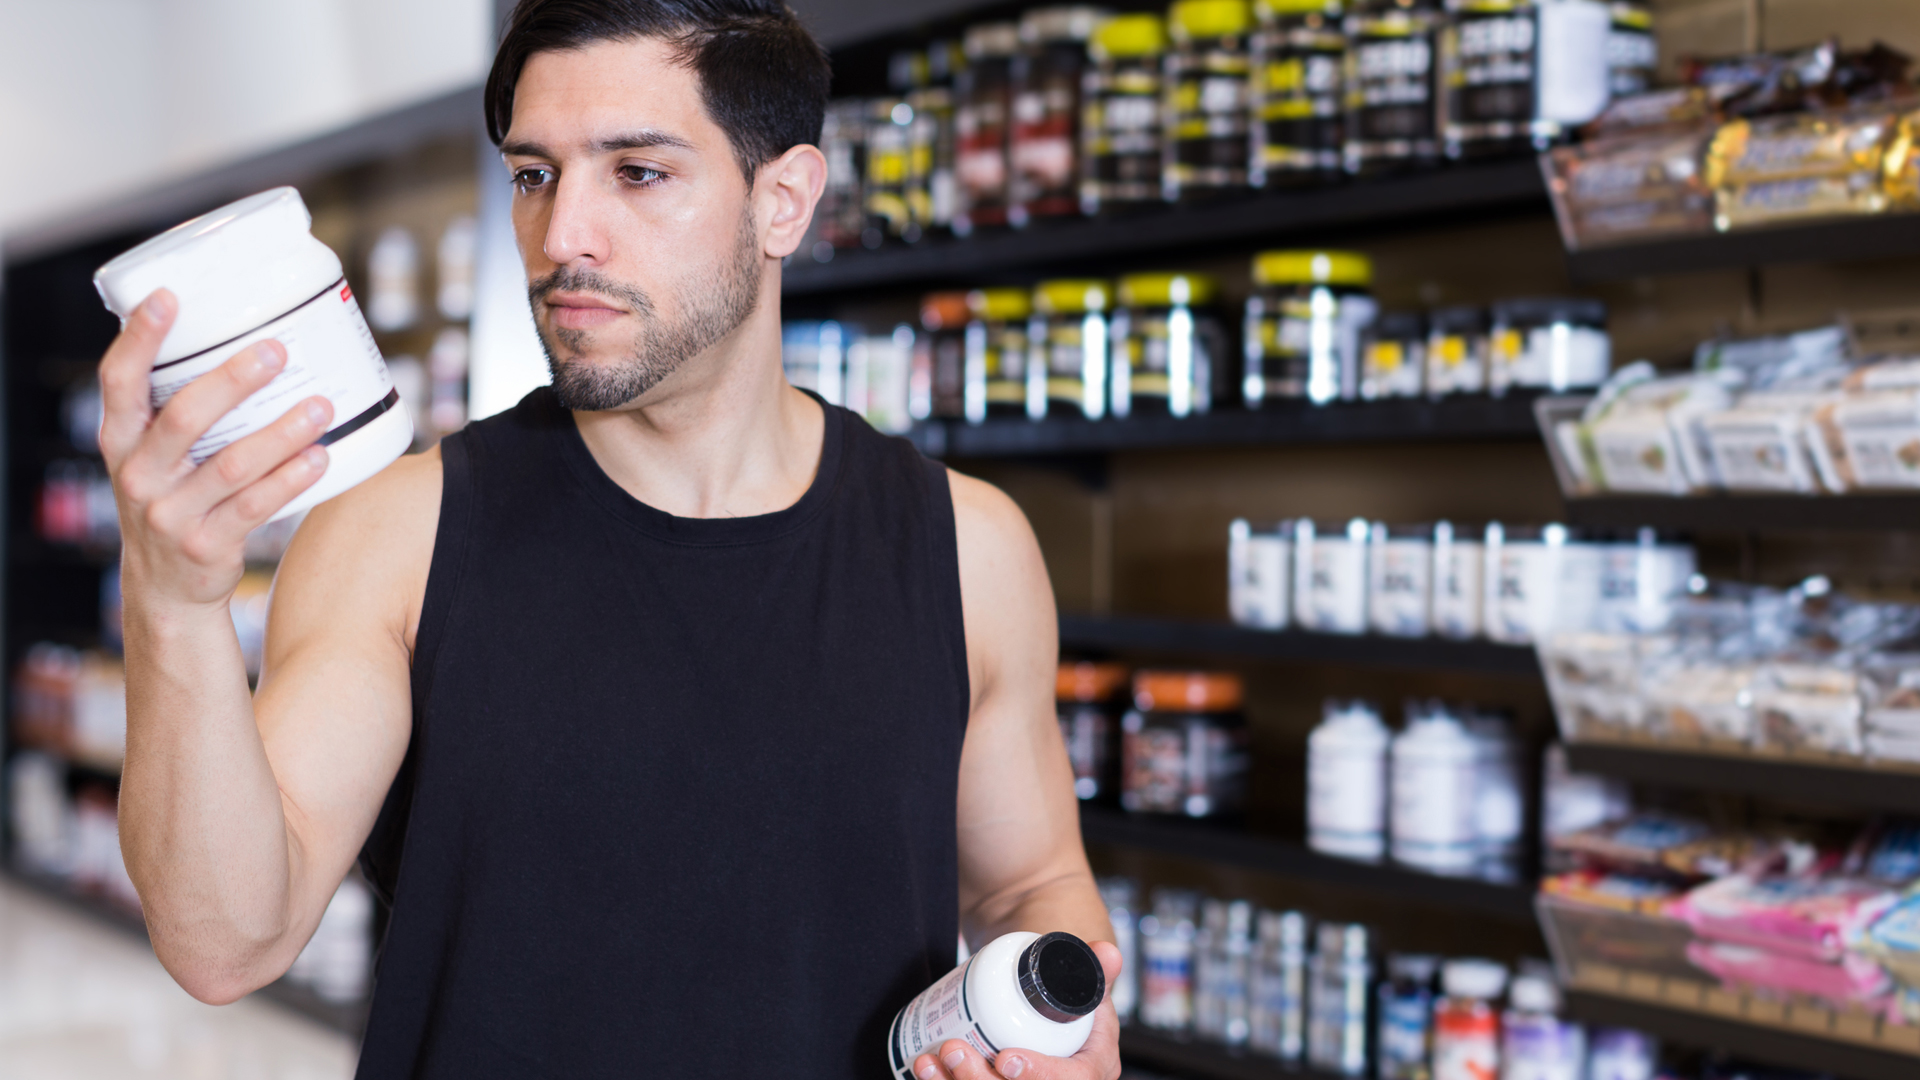 Safe Quality Food Certification Program and Dietary Supplements